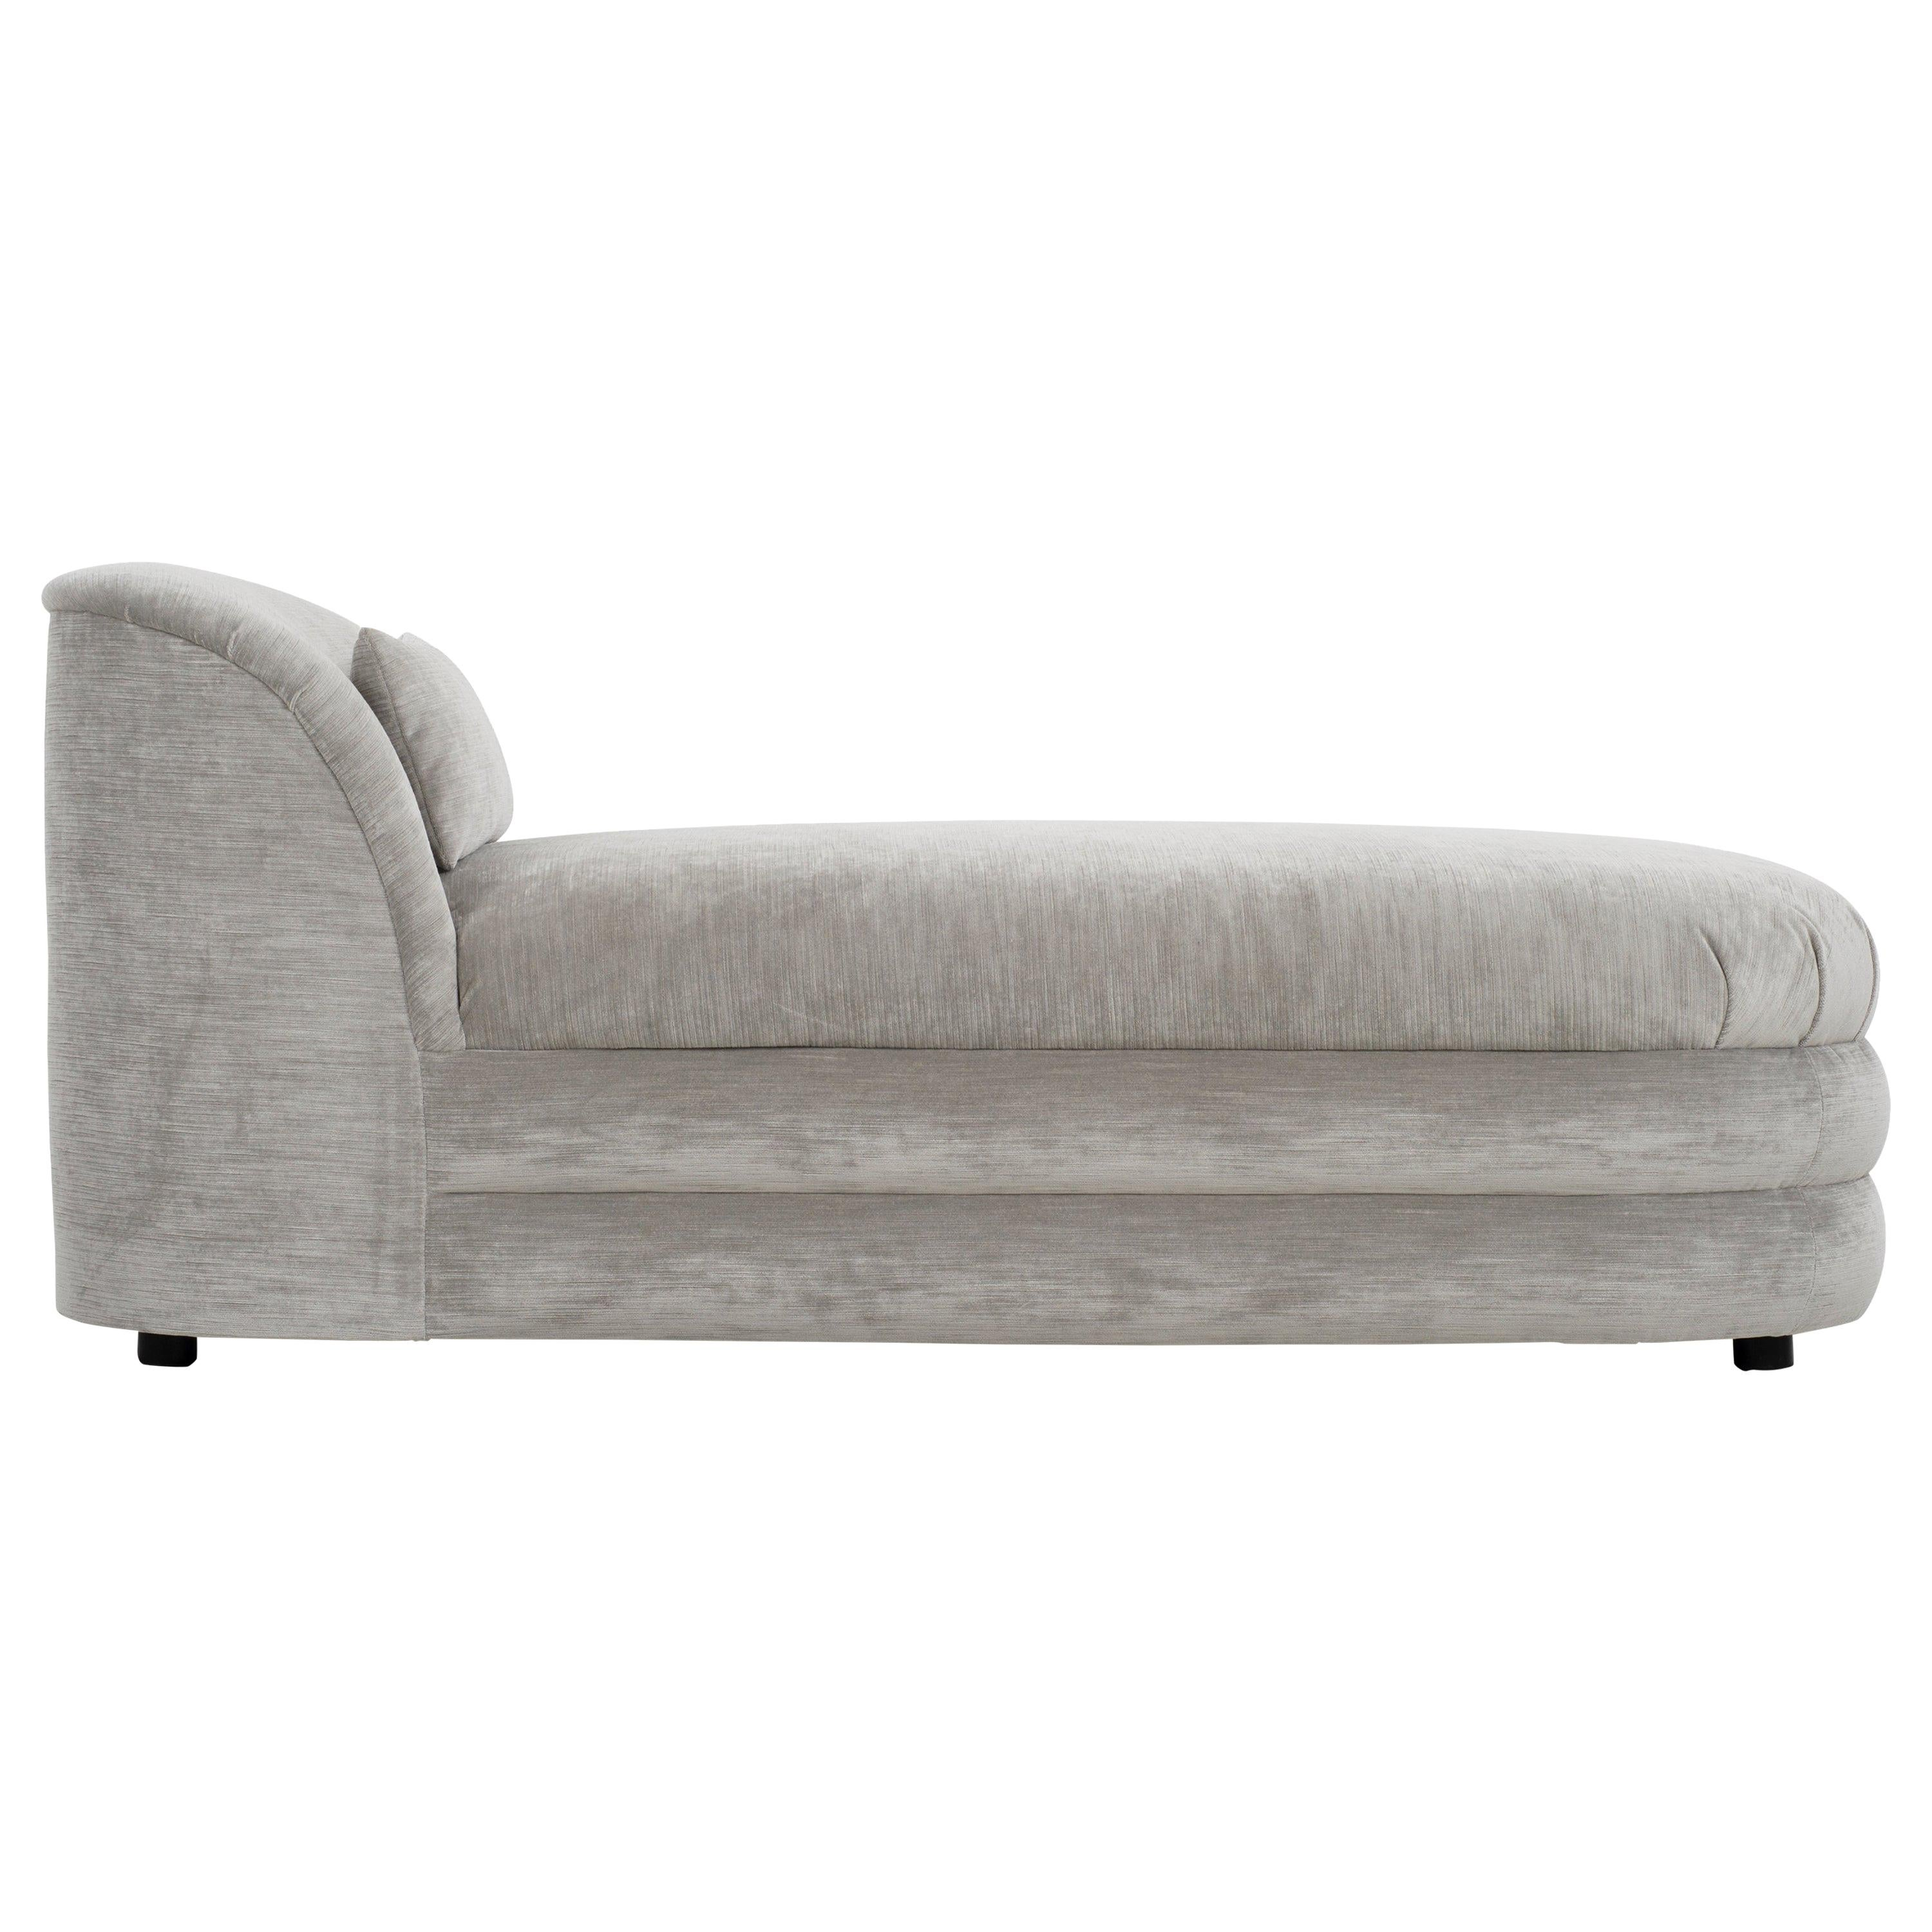 Directional Chaise Lounge